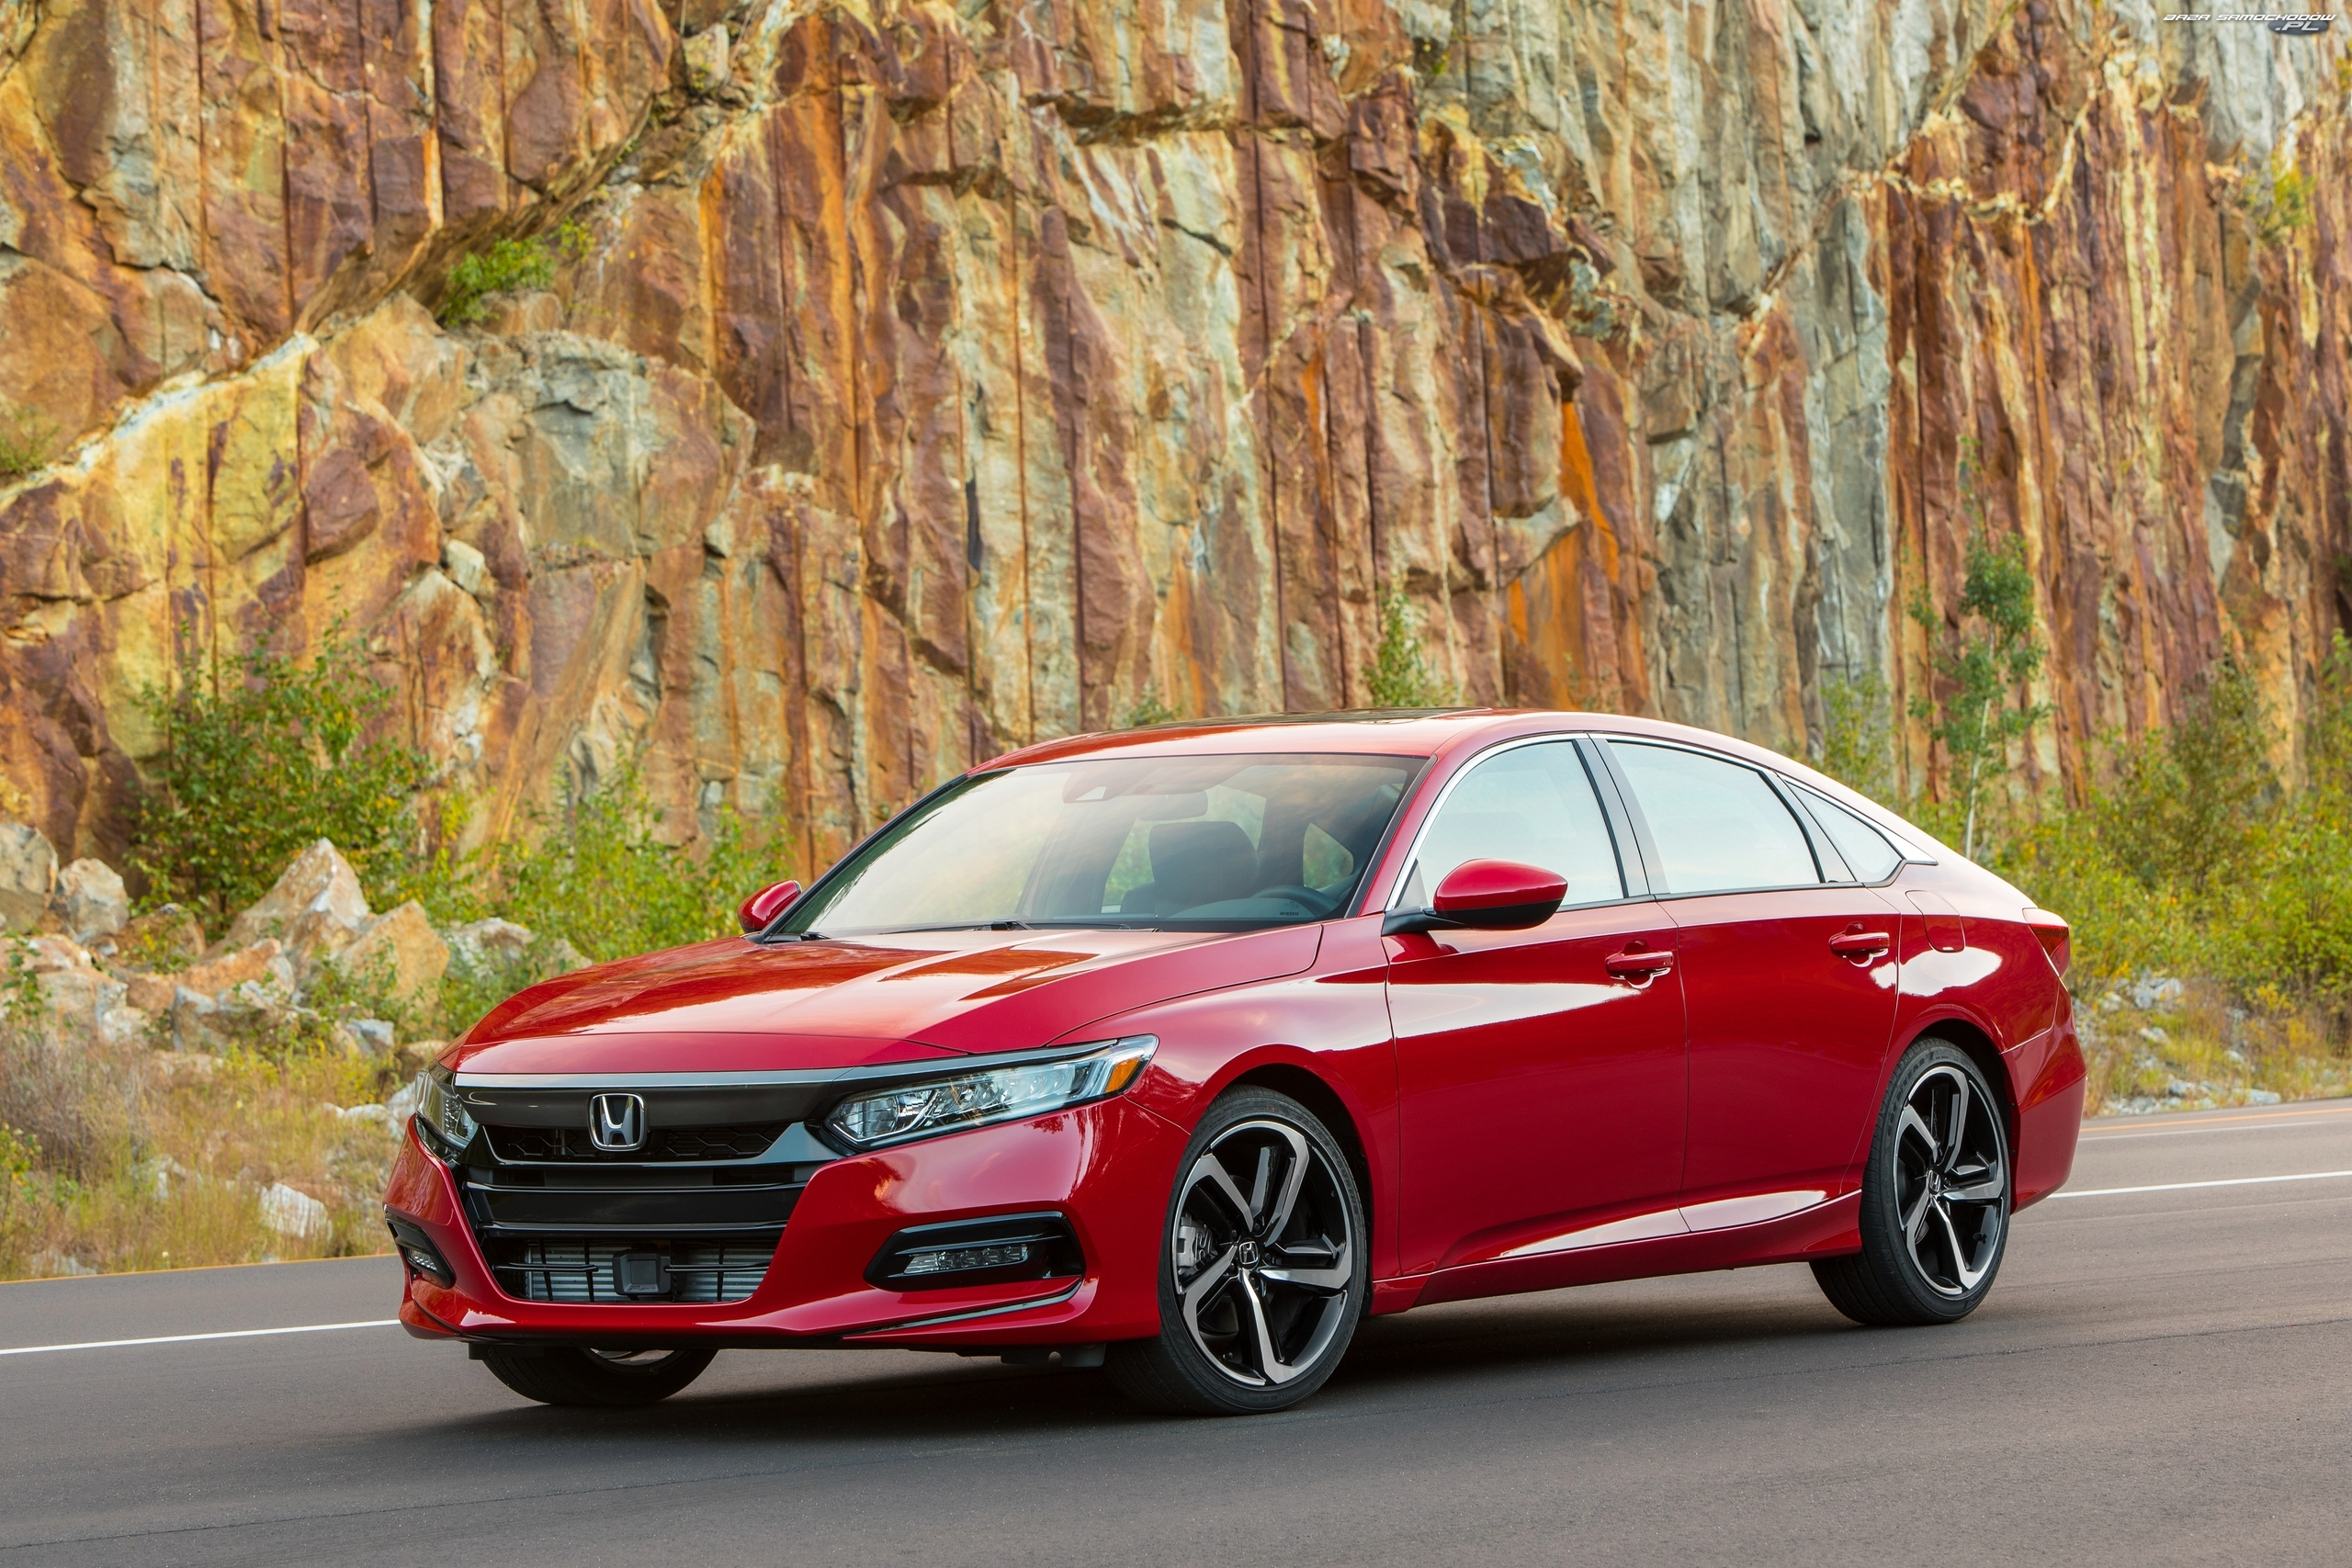 Honda Accord 2.0T Sport, 2018